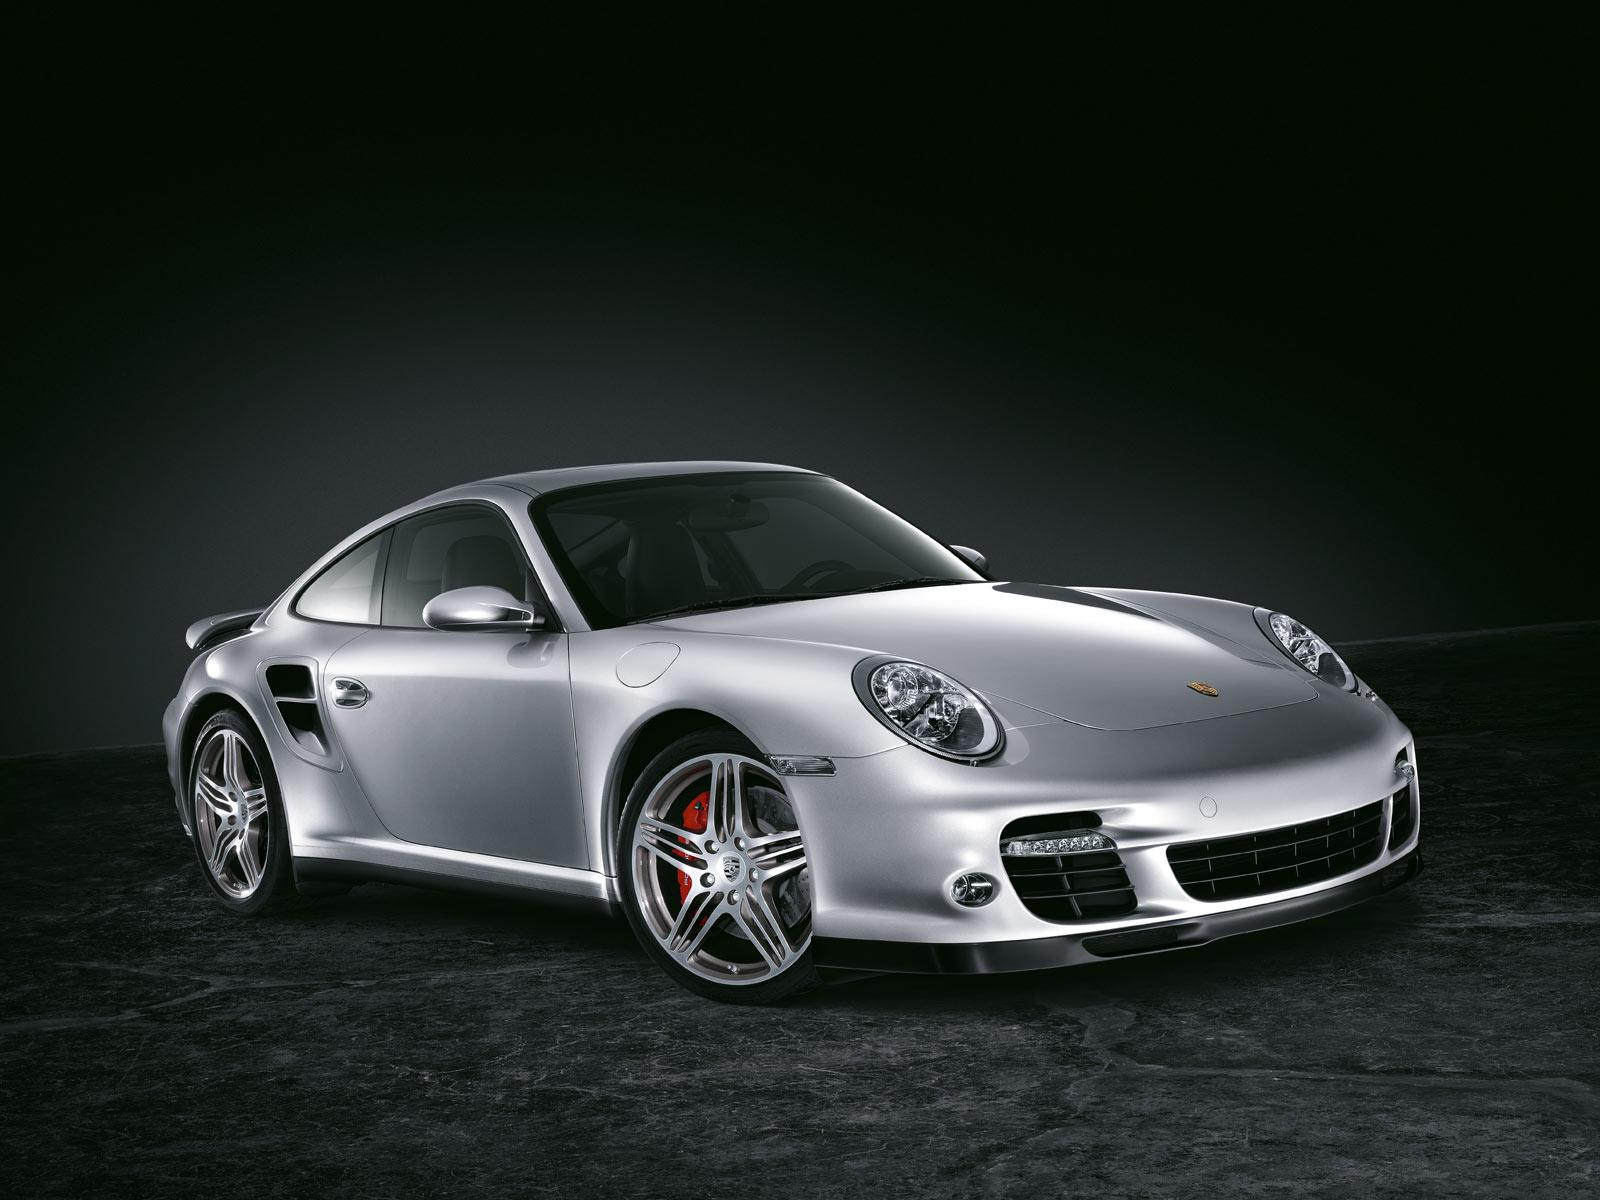 2009 Porsche 911 Turbo Image